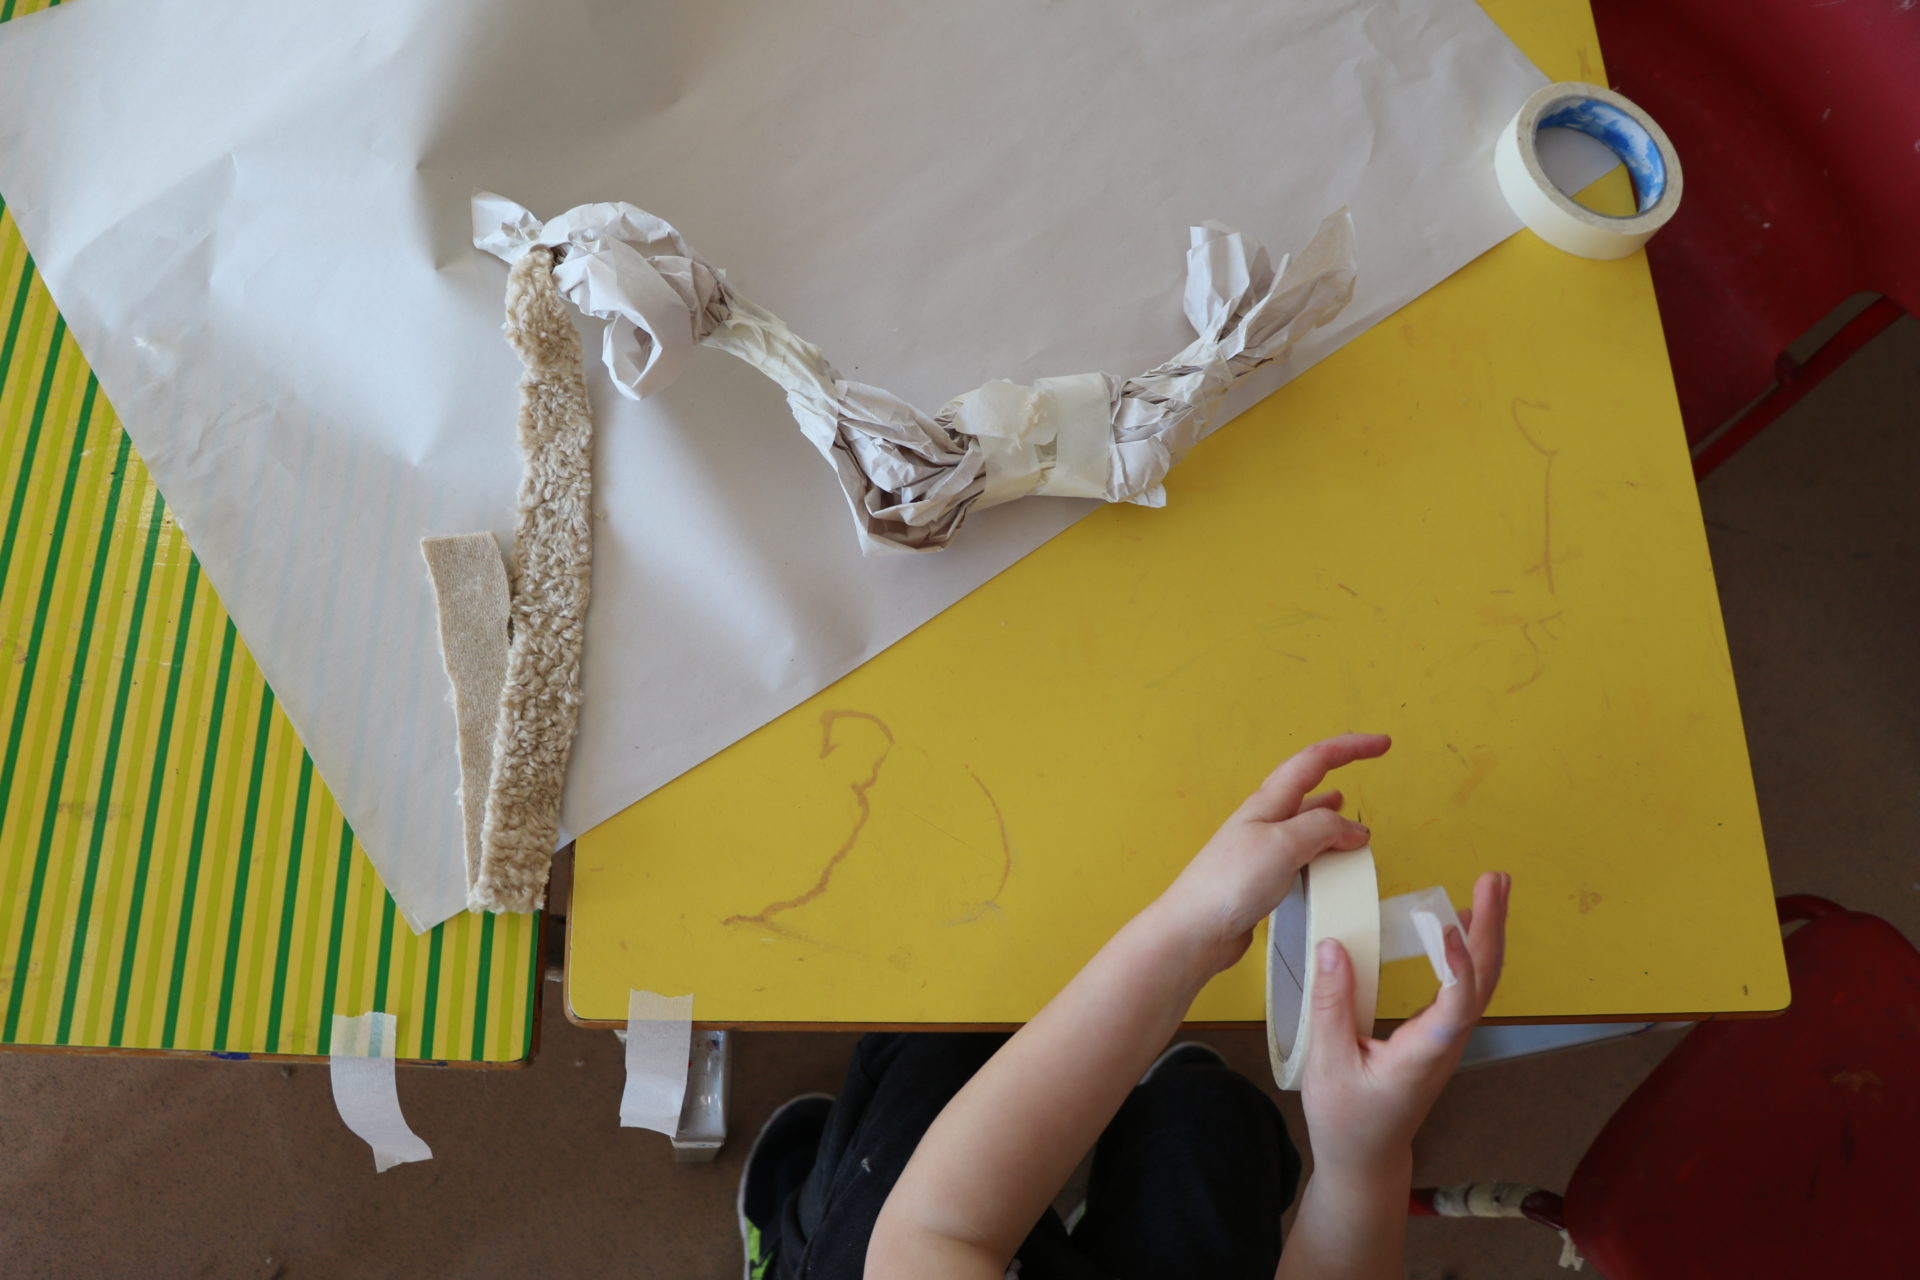 Hands, paper, yellow table